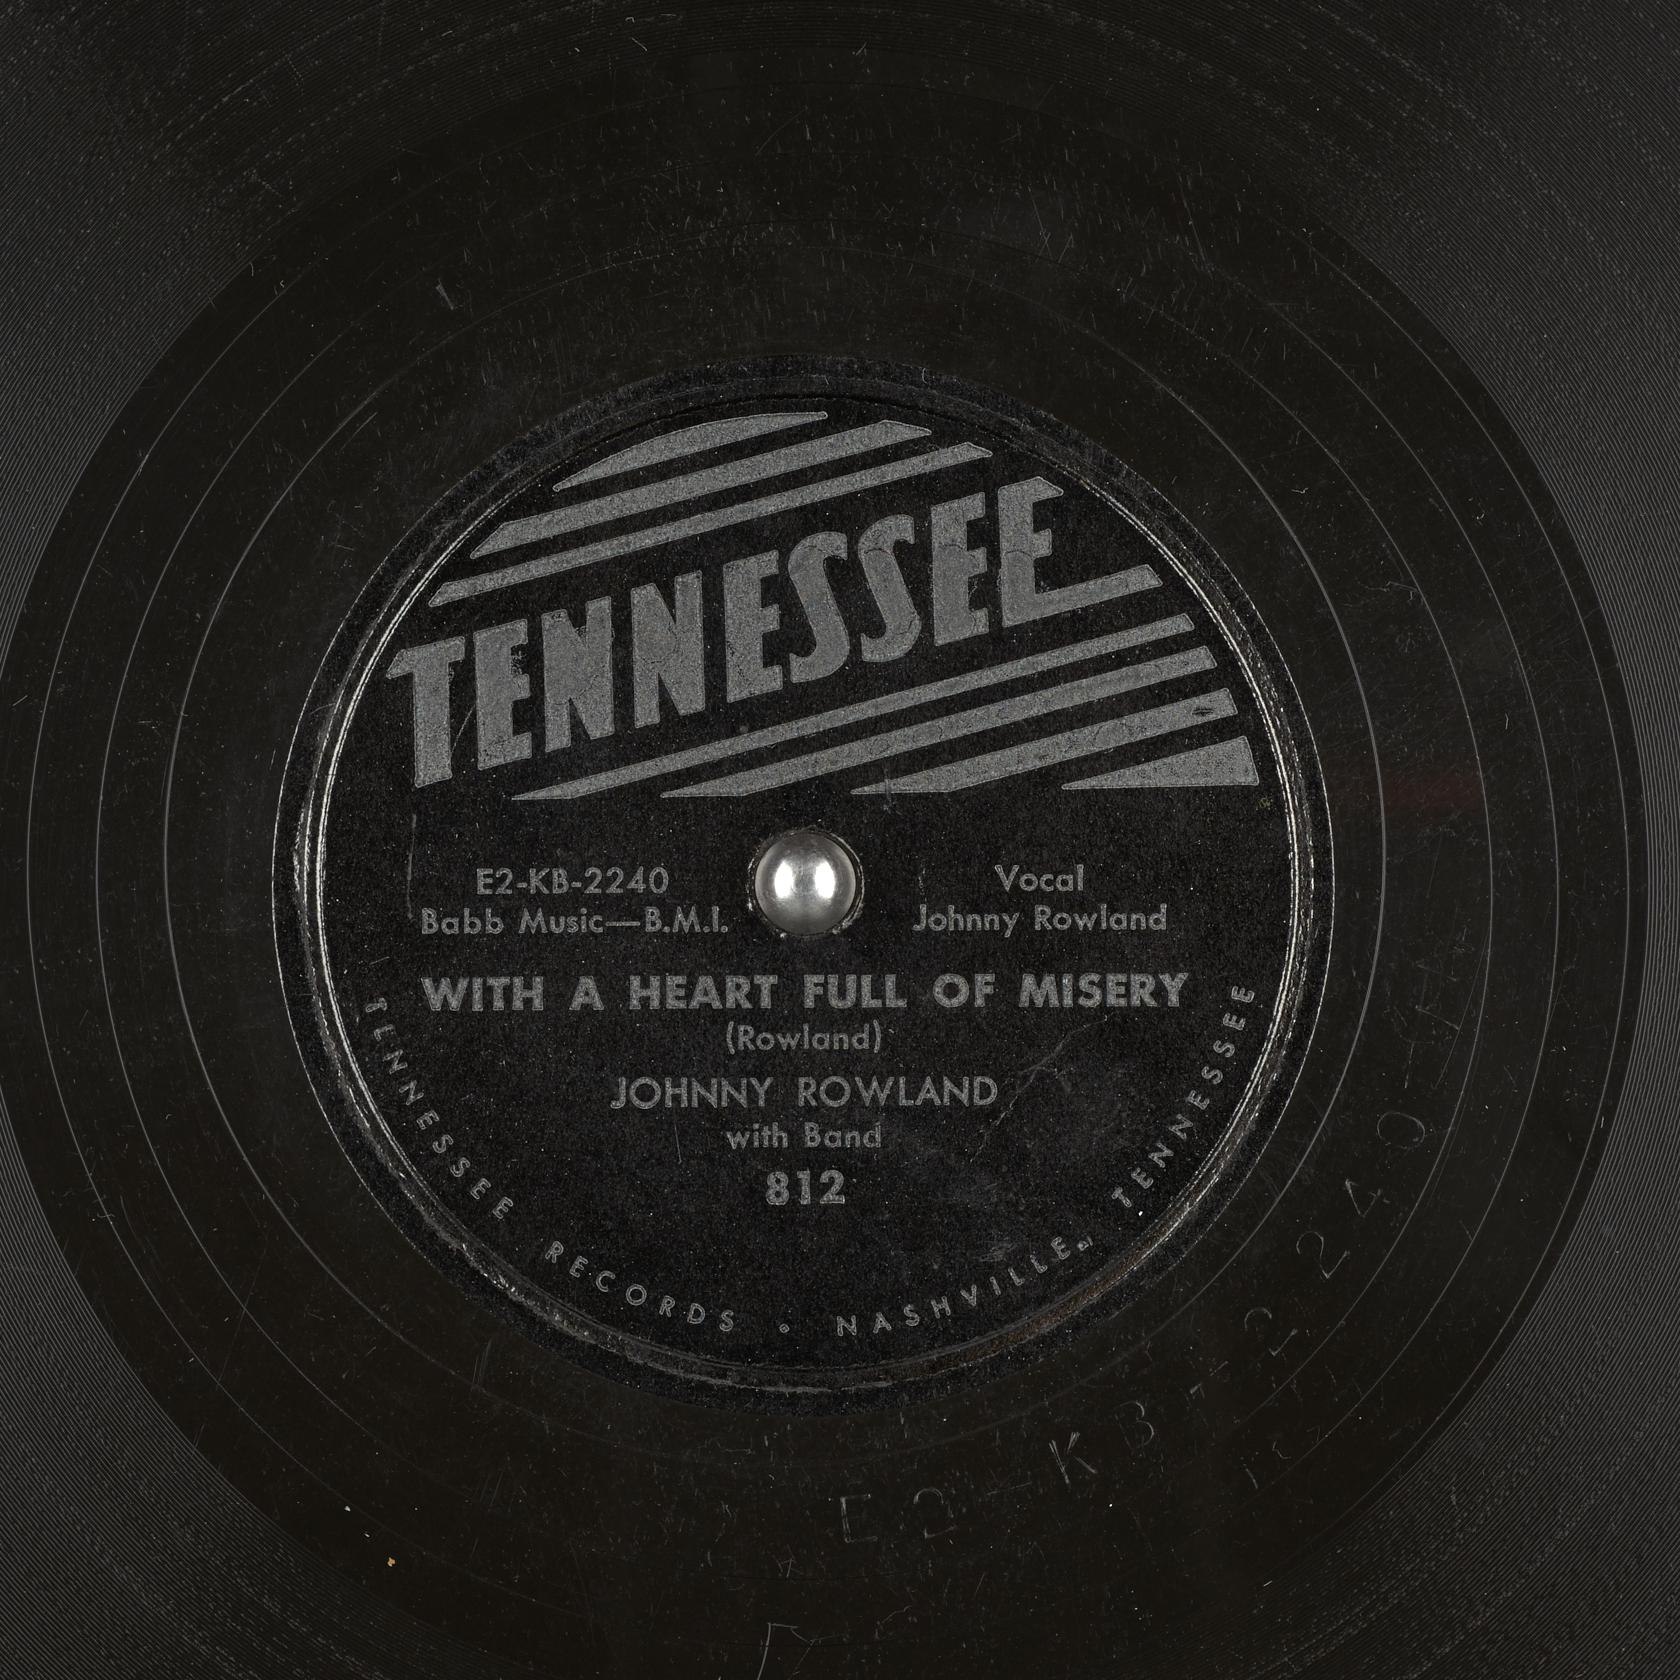 studio tennessee records